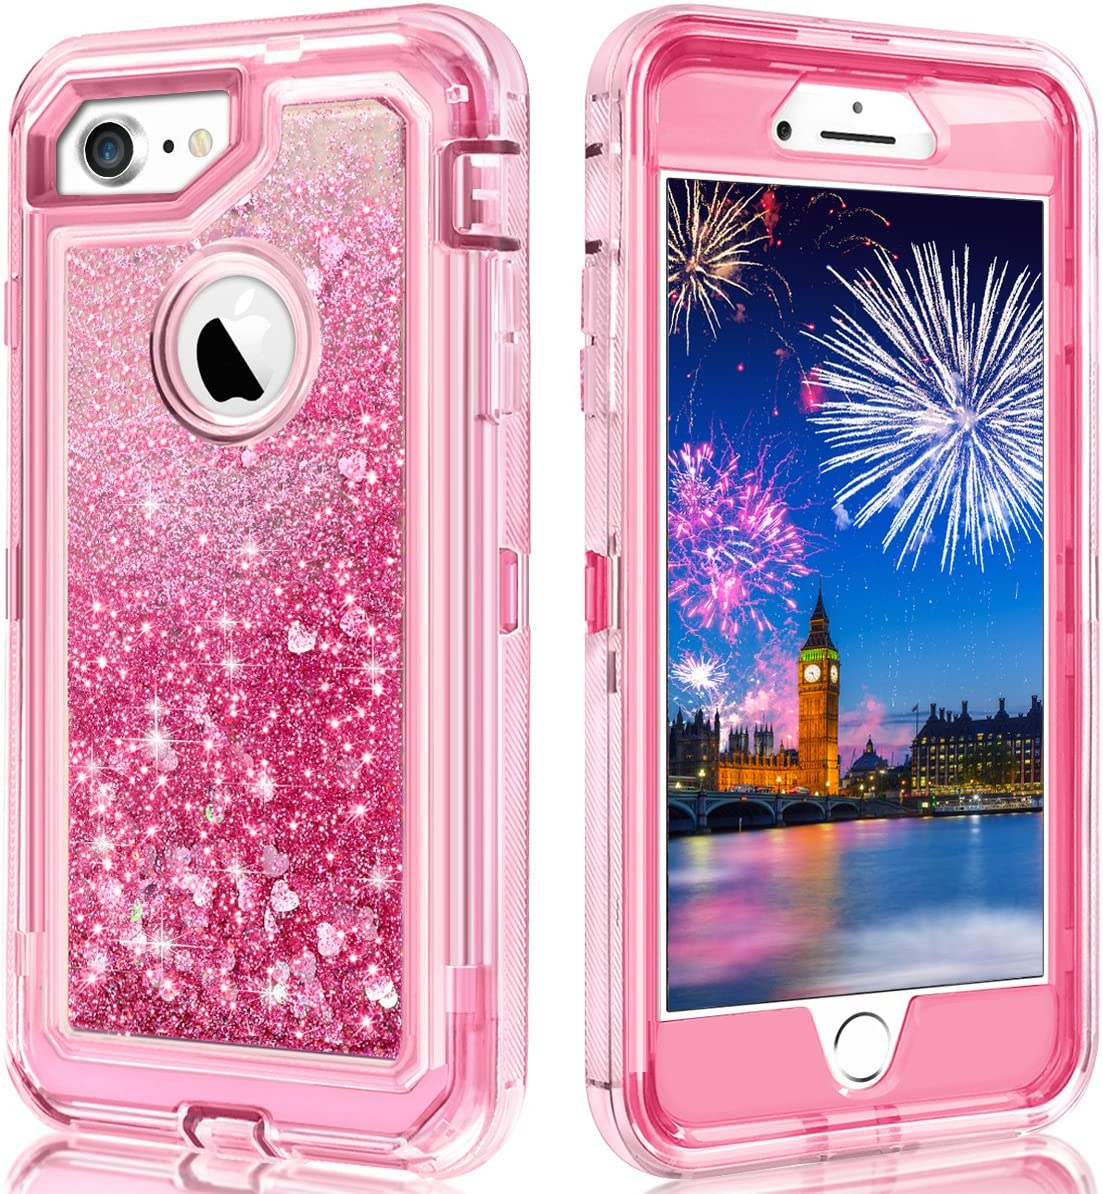 WOLLONY for iPhone 7 Case,iPhone 6 Case,iPhone 8 Case 360 Full Body Shockproof Liquid Glitter Quicksand Bling Heavy Duty Hard Bumper Non-Slip Soft Transparent Protective for iPhone SE2 8 7 6 Pink